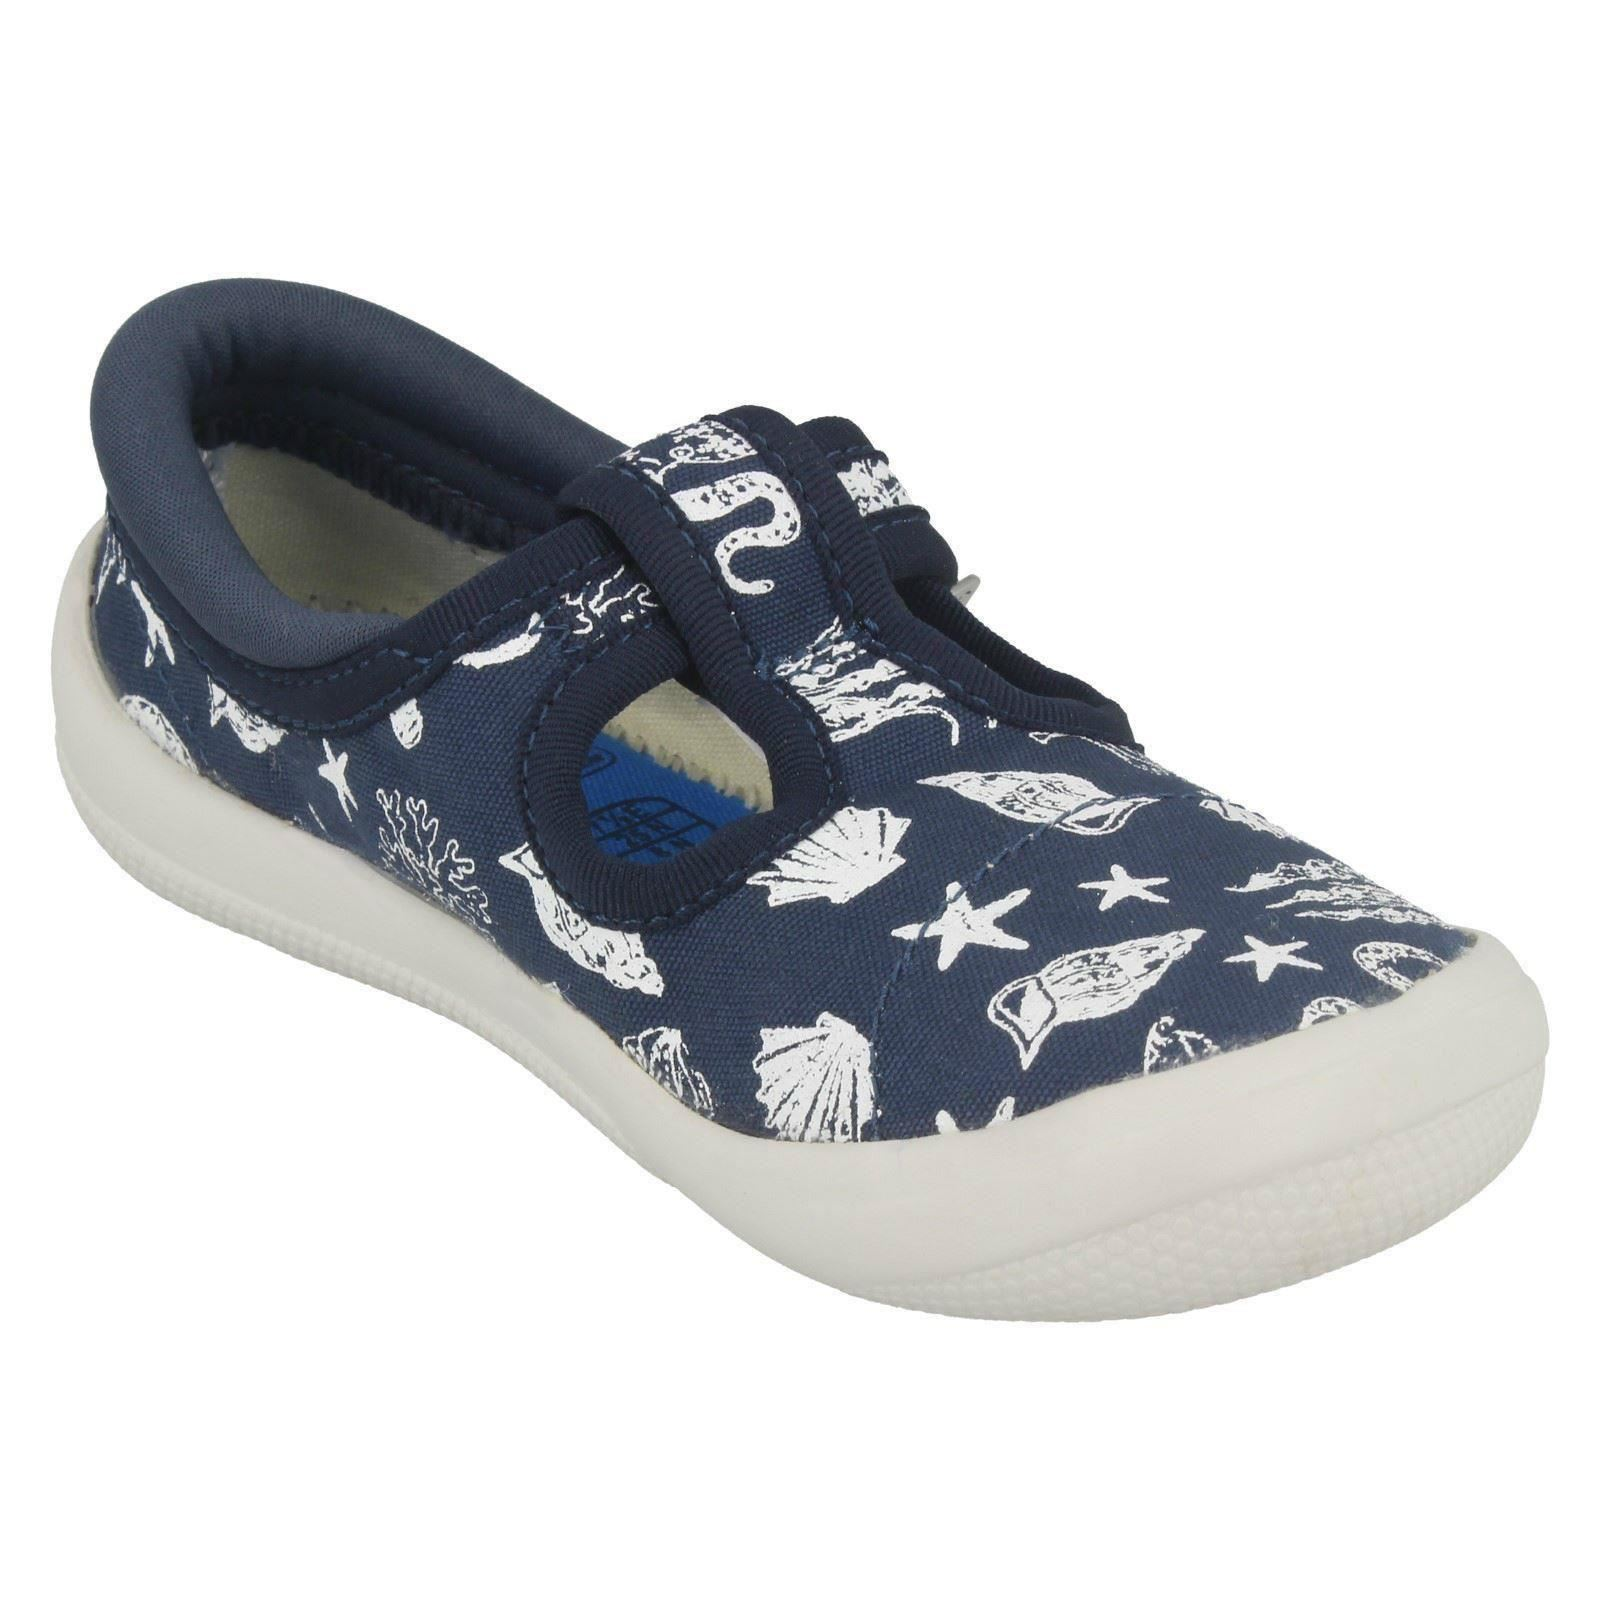 BOYS CLARKS BRILEY SKY MONKEY BEACH THEME CASUAL CANVAS SHOES DOODLES PUMPS SIZE